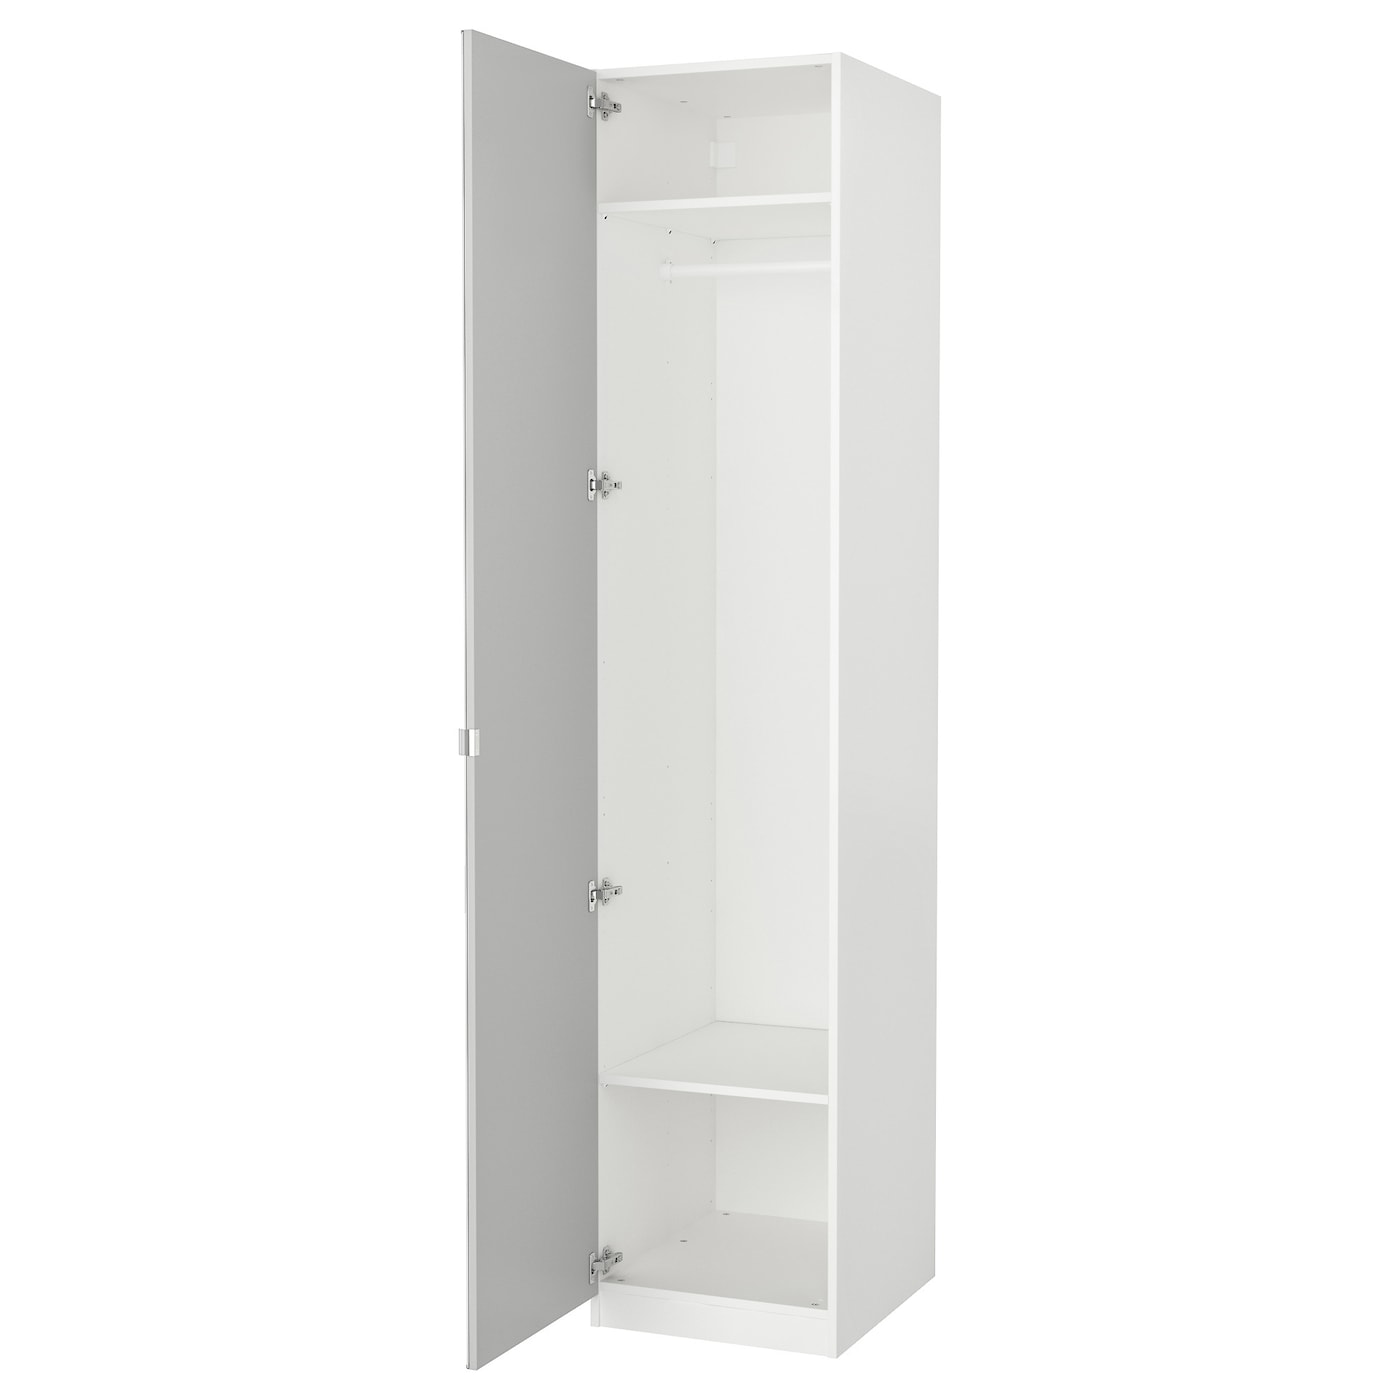 Pax wardrobe white vikedal mirror glass 50x60x236 cm ikea for Porte 60 x 50